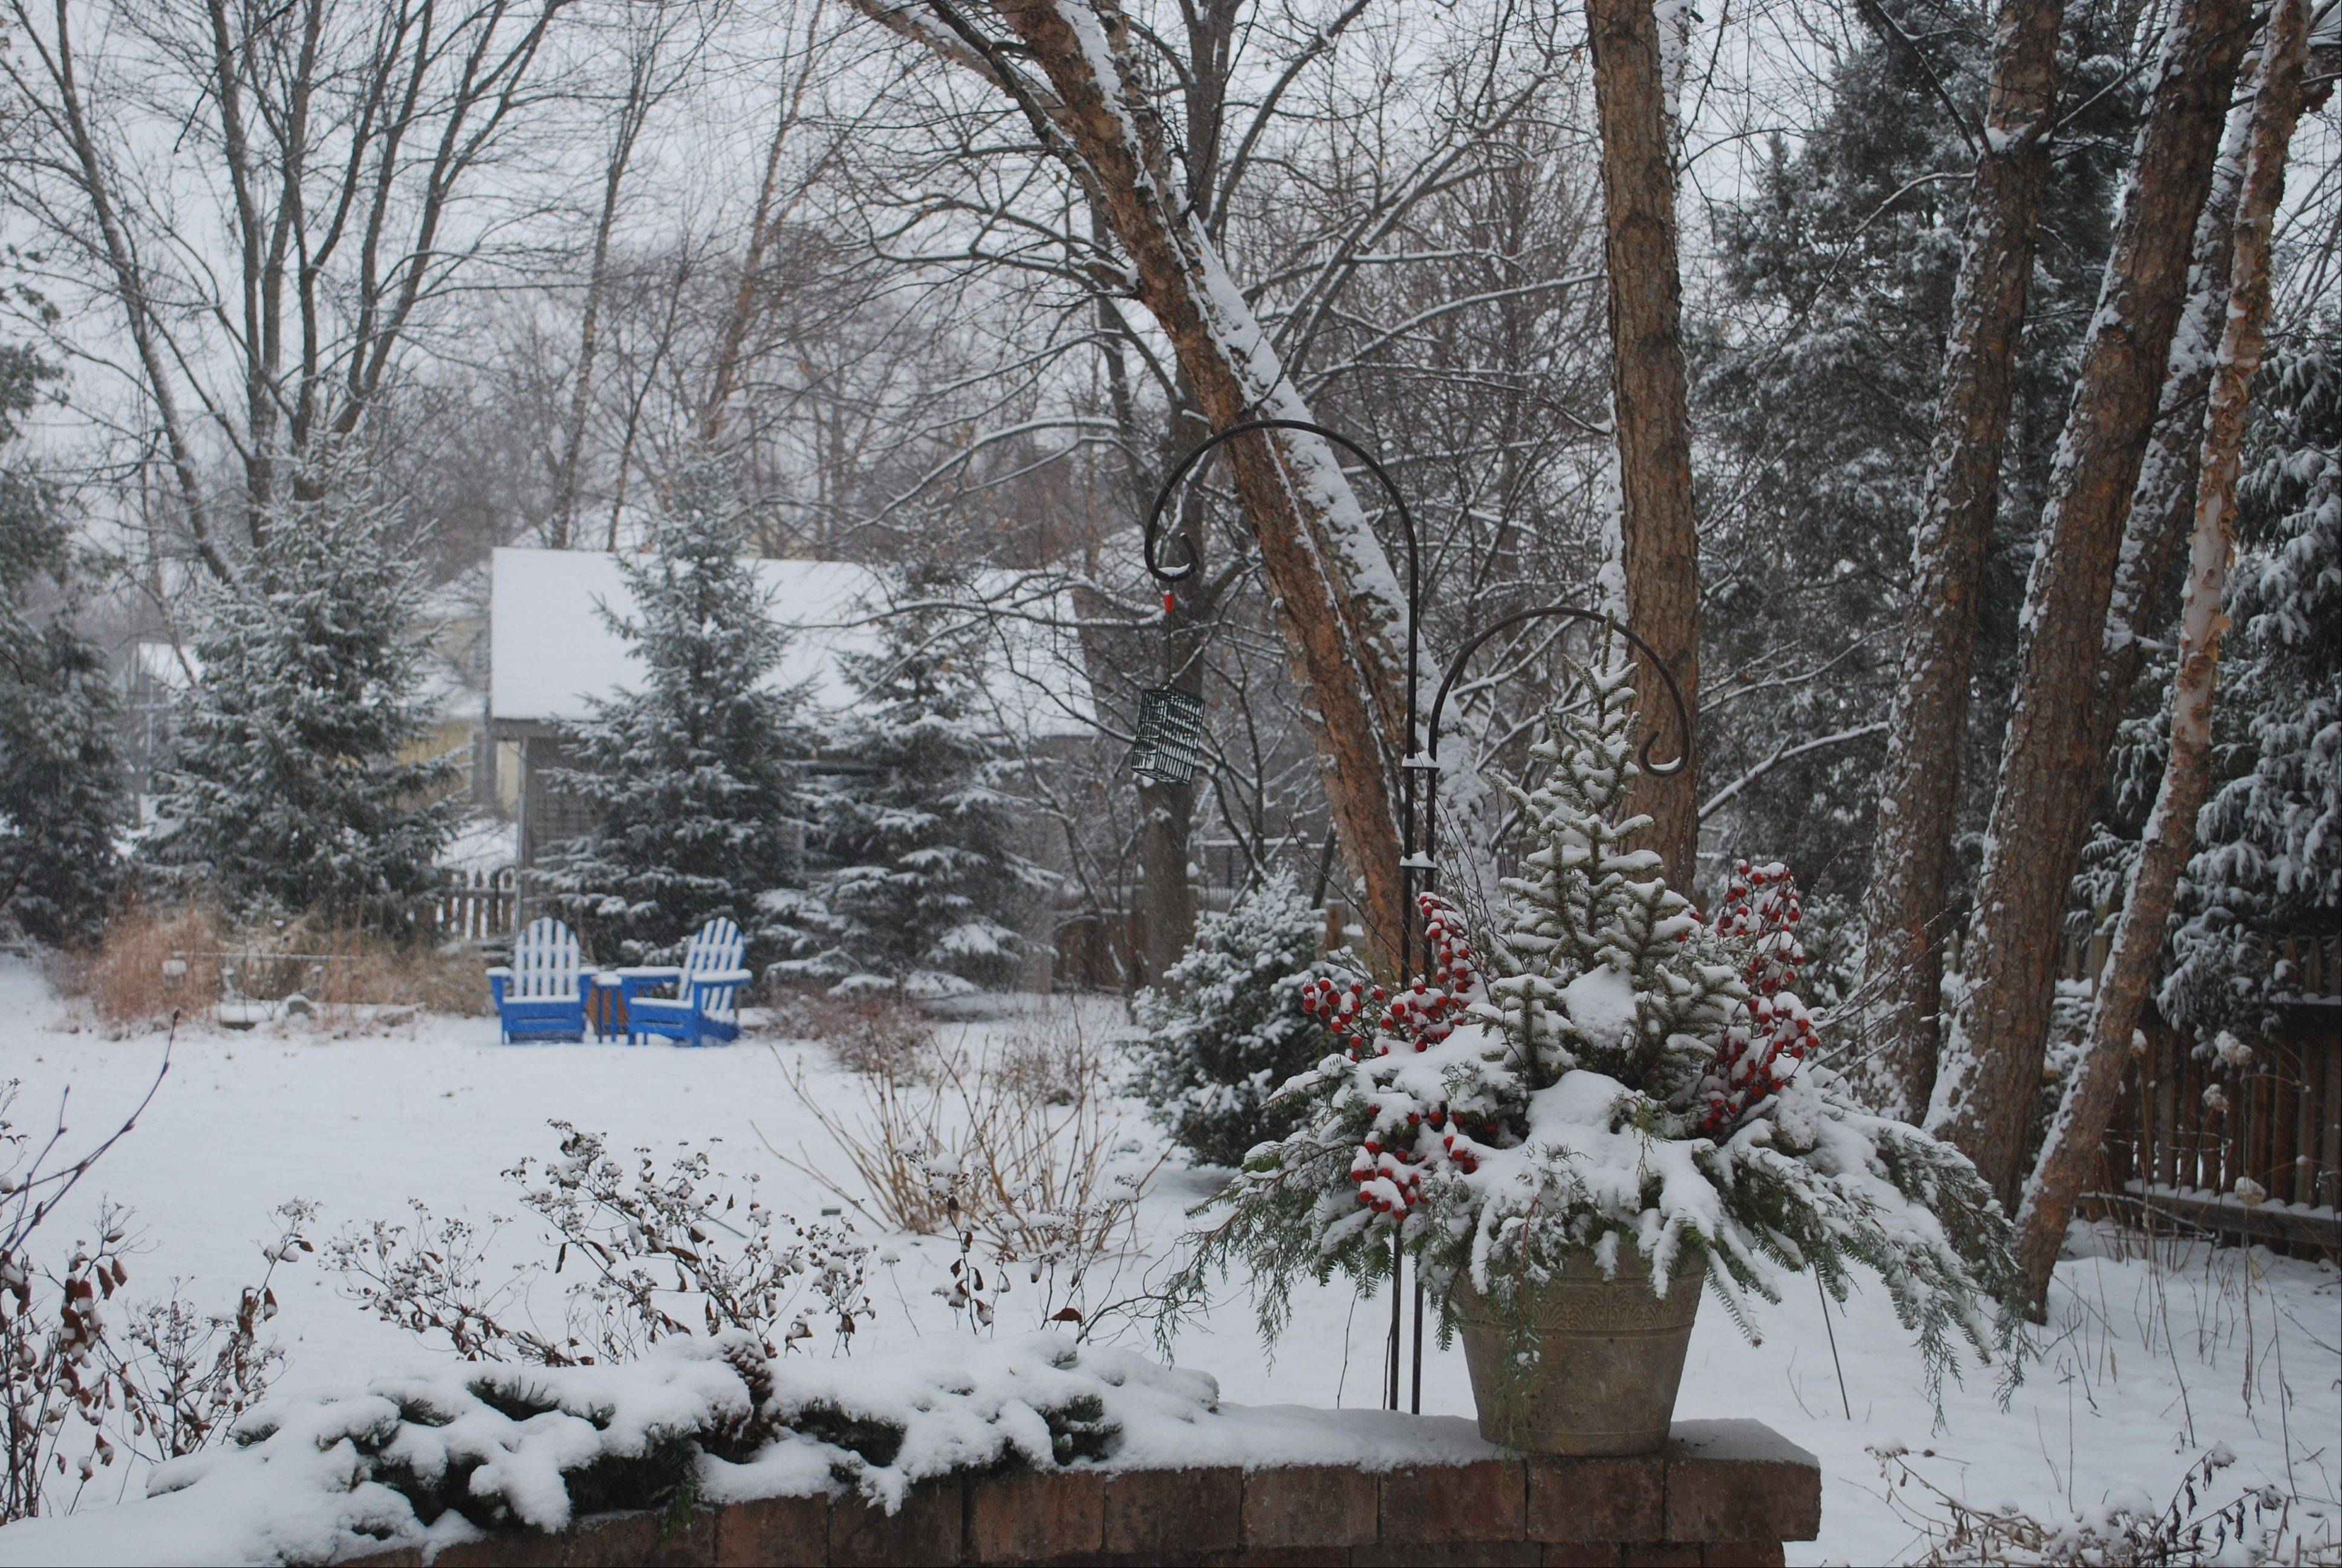 Christensen's winter backyard landscape is serene with a pop of color from the blue chairs in the back of the yard and the berries in the container near the house.